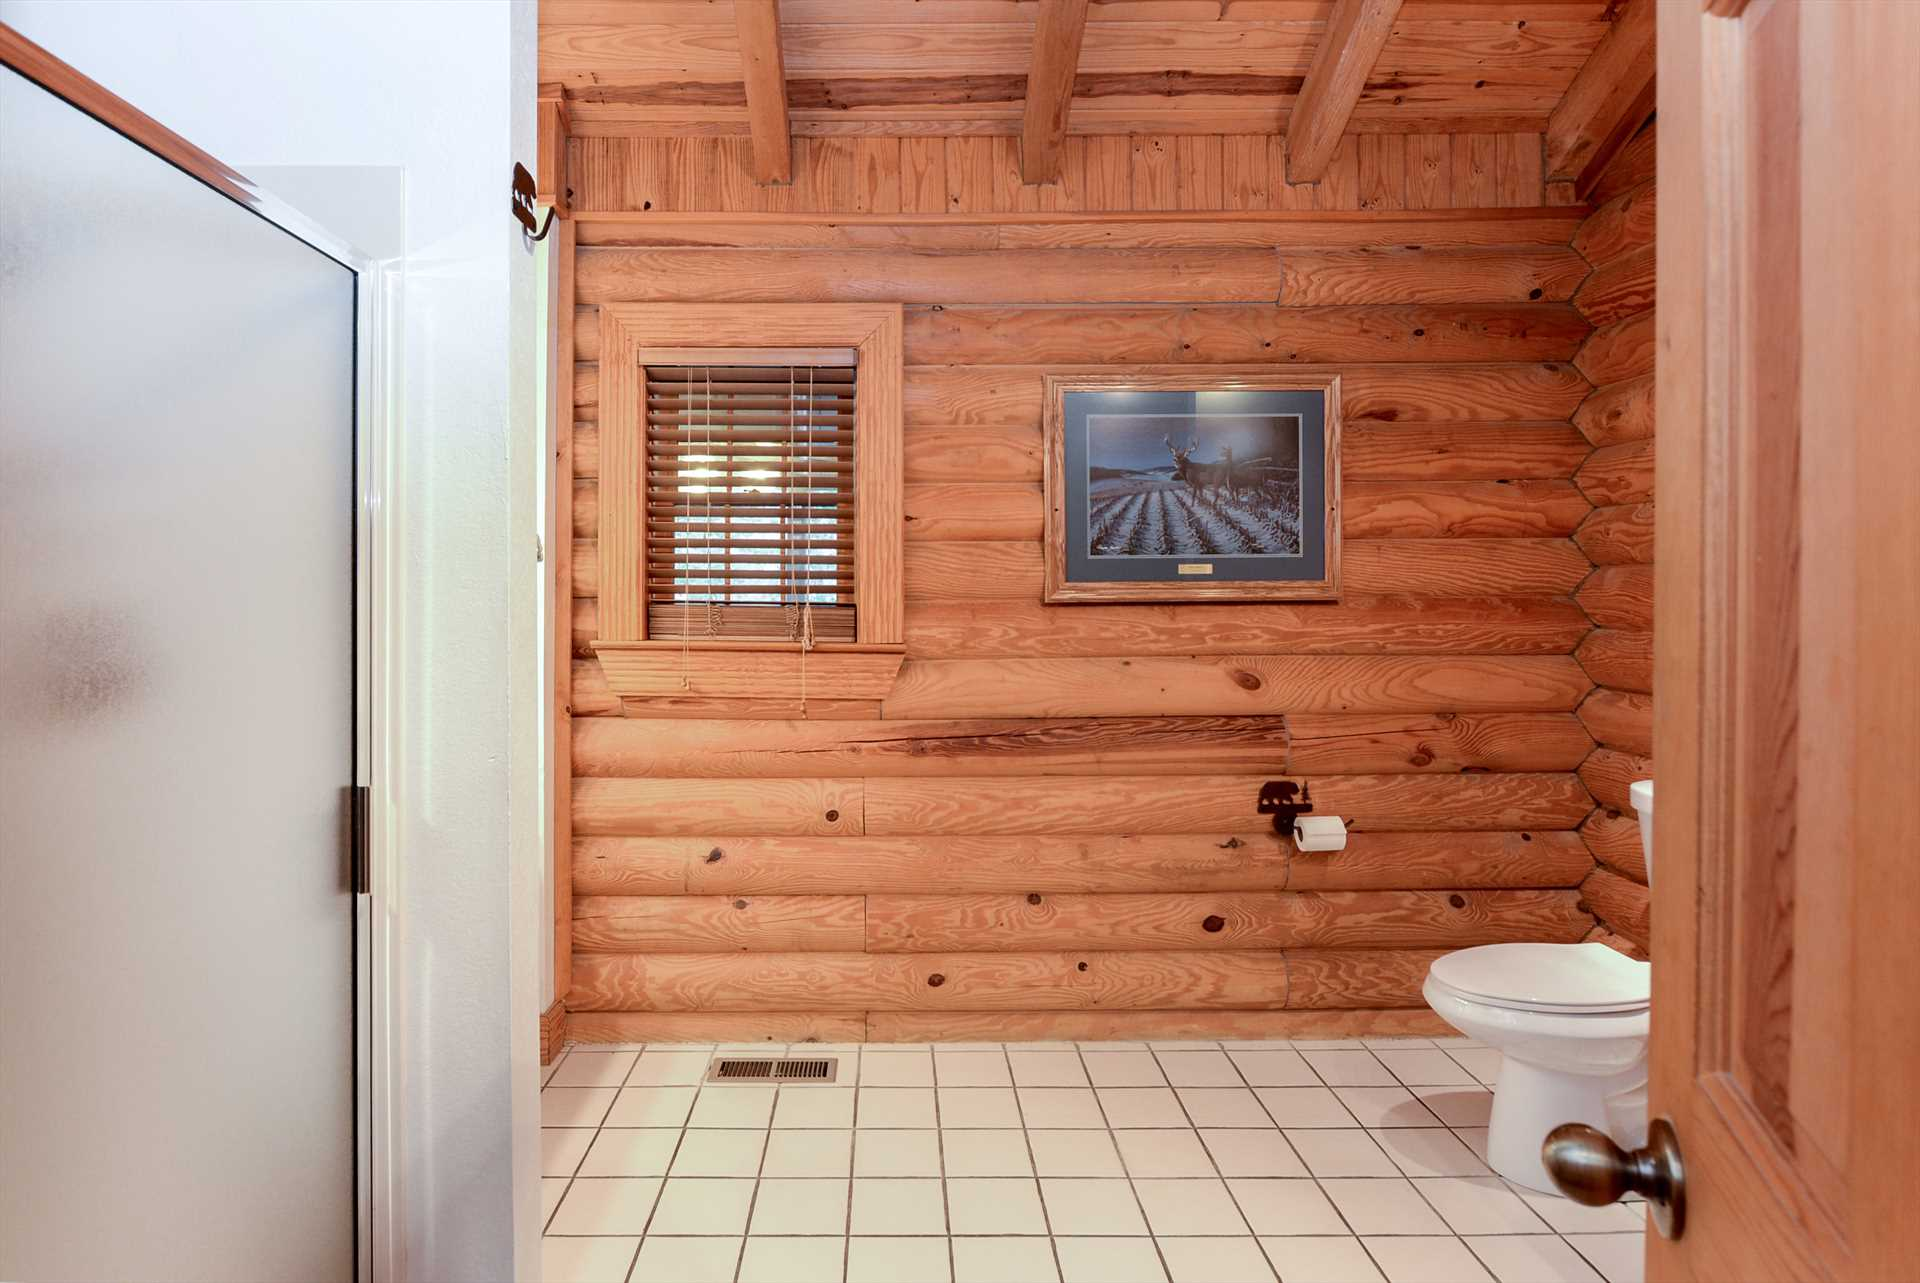 The spacious bathrooms keep the rustic decor of the cabin.